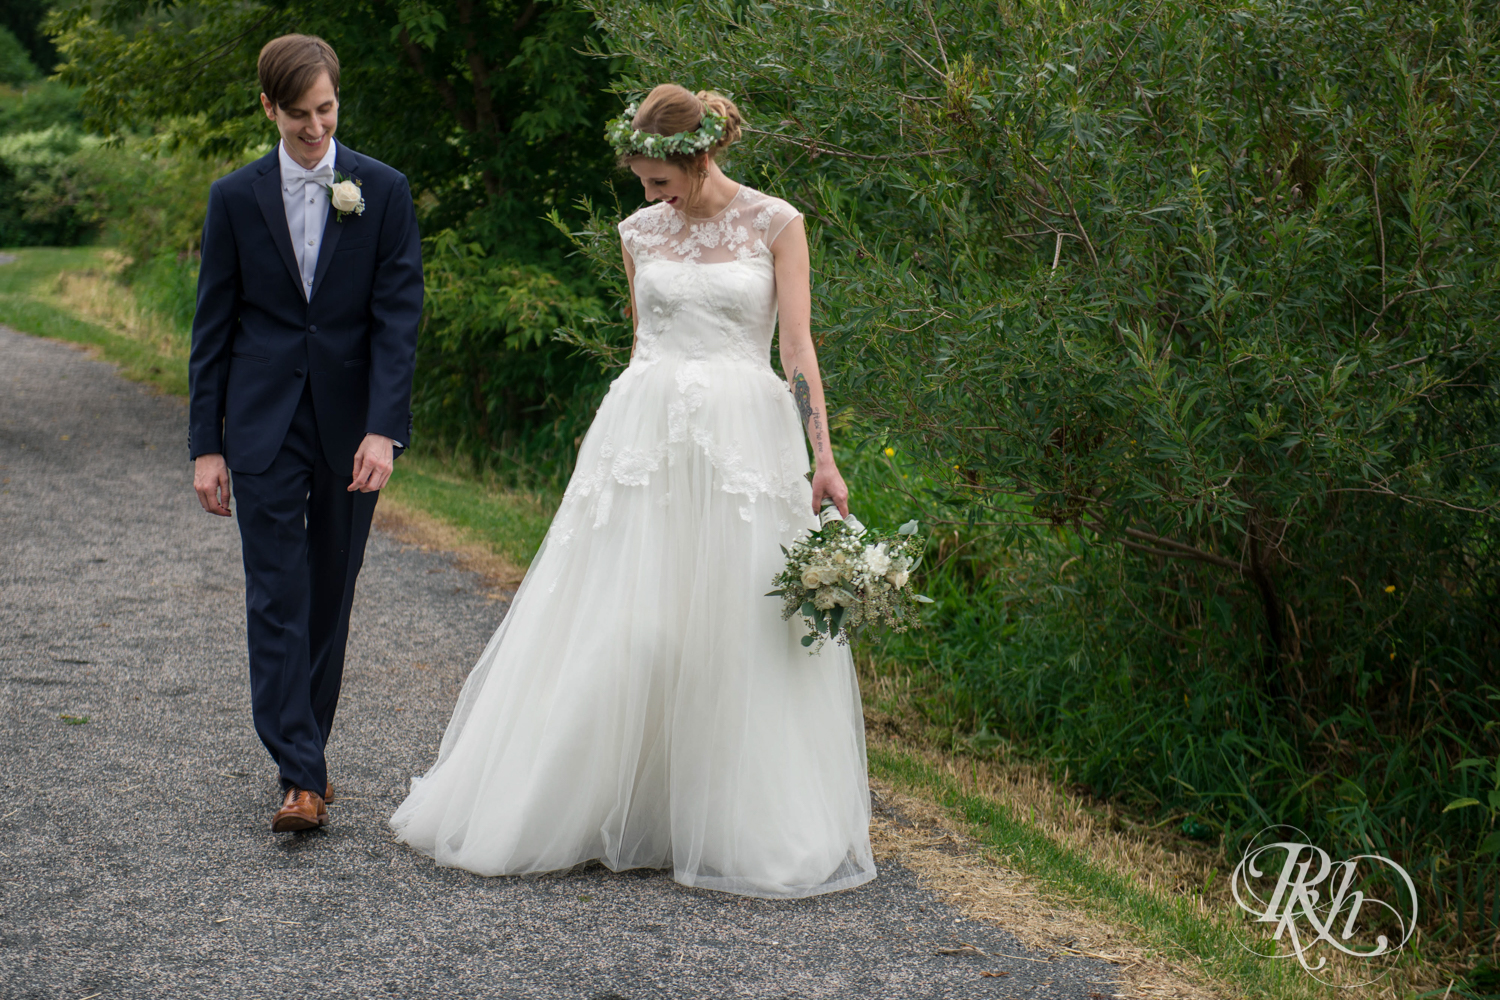 How to Shoot Candid Wedding Photography - RKH Images  (8 of 8).jpg